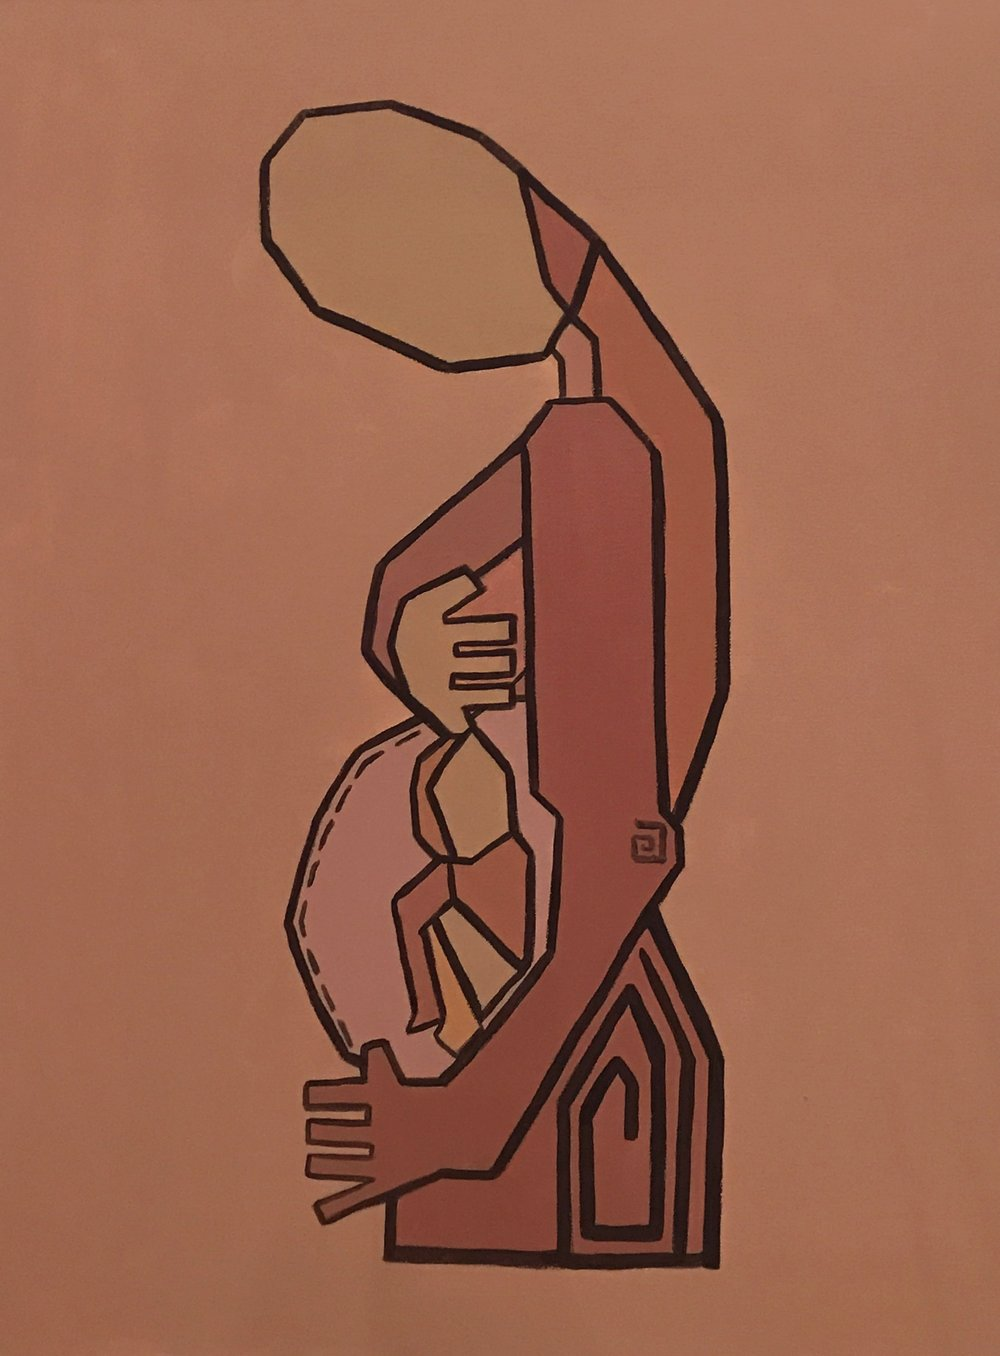 Motherhood III   Acrylic on canvas  80 cm x 60 cm x 3.8 cm